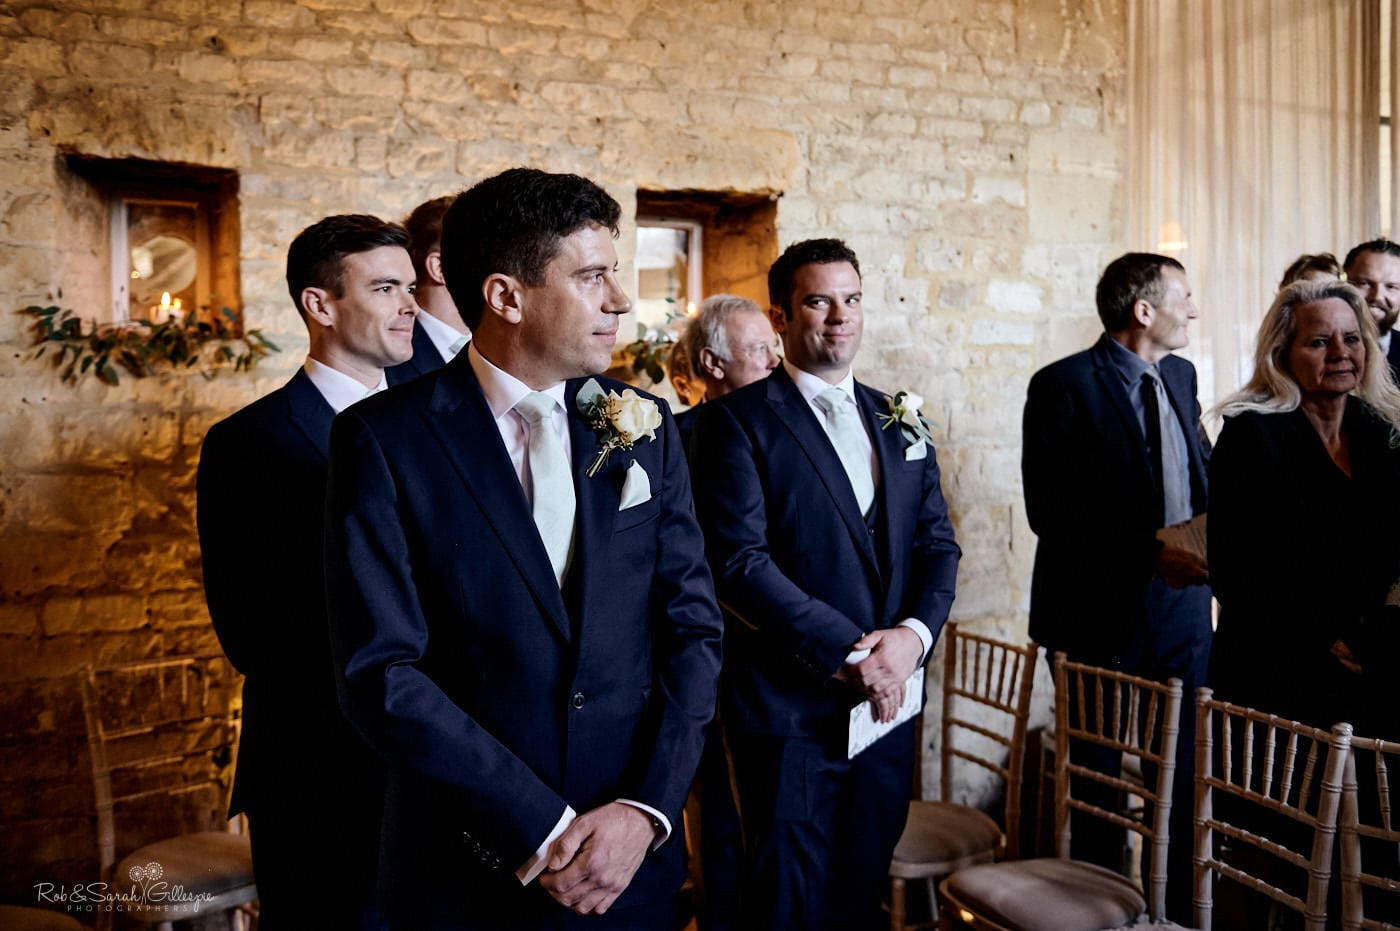 Groom waits for bride at Lapstone Barn wedding